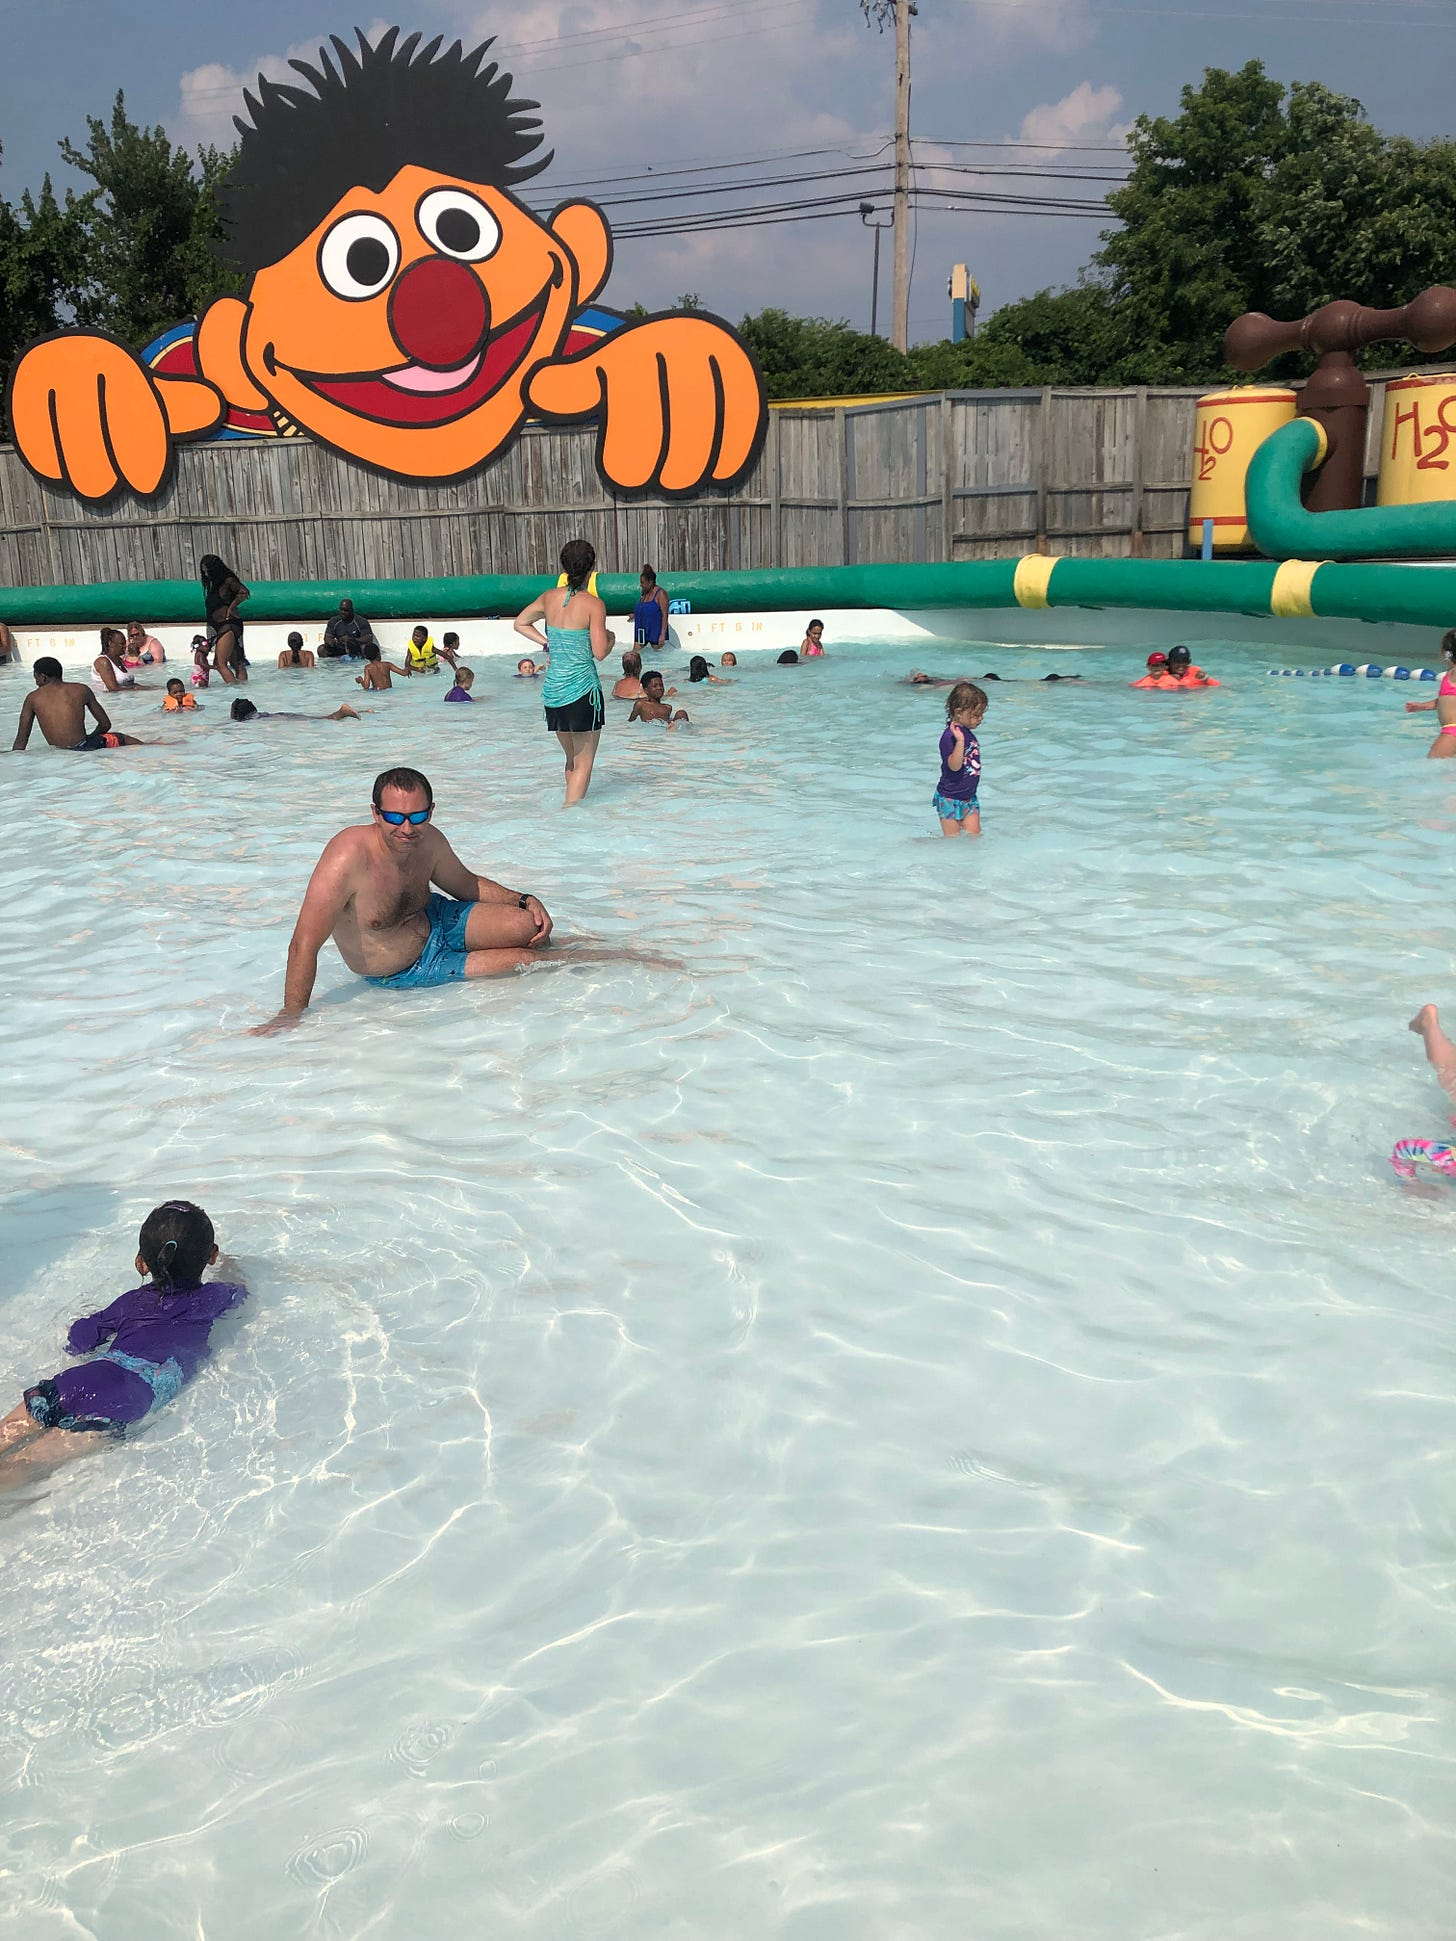 Photograph shows a wave pool with toddlers in it.